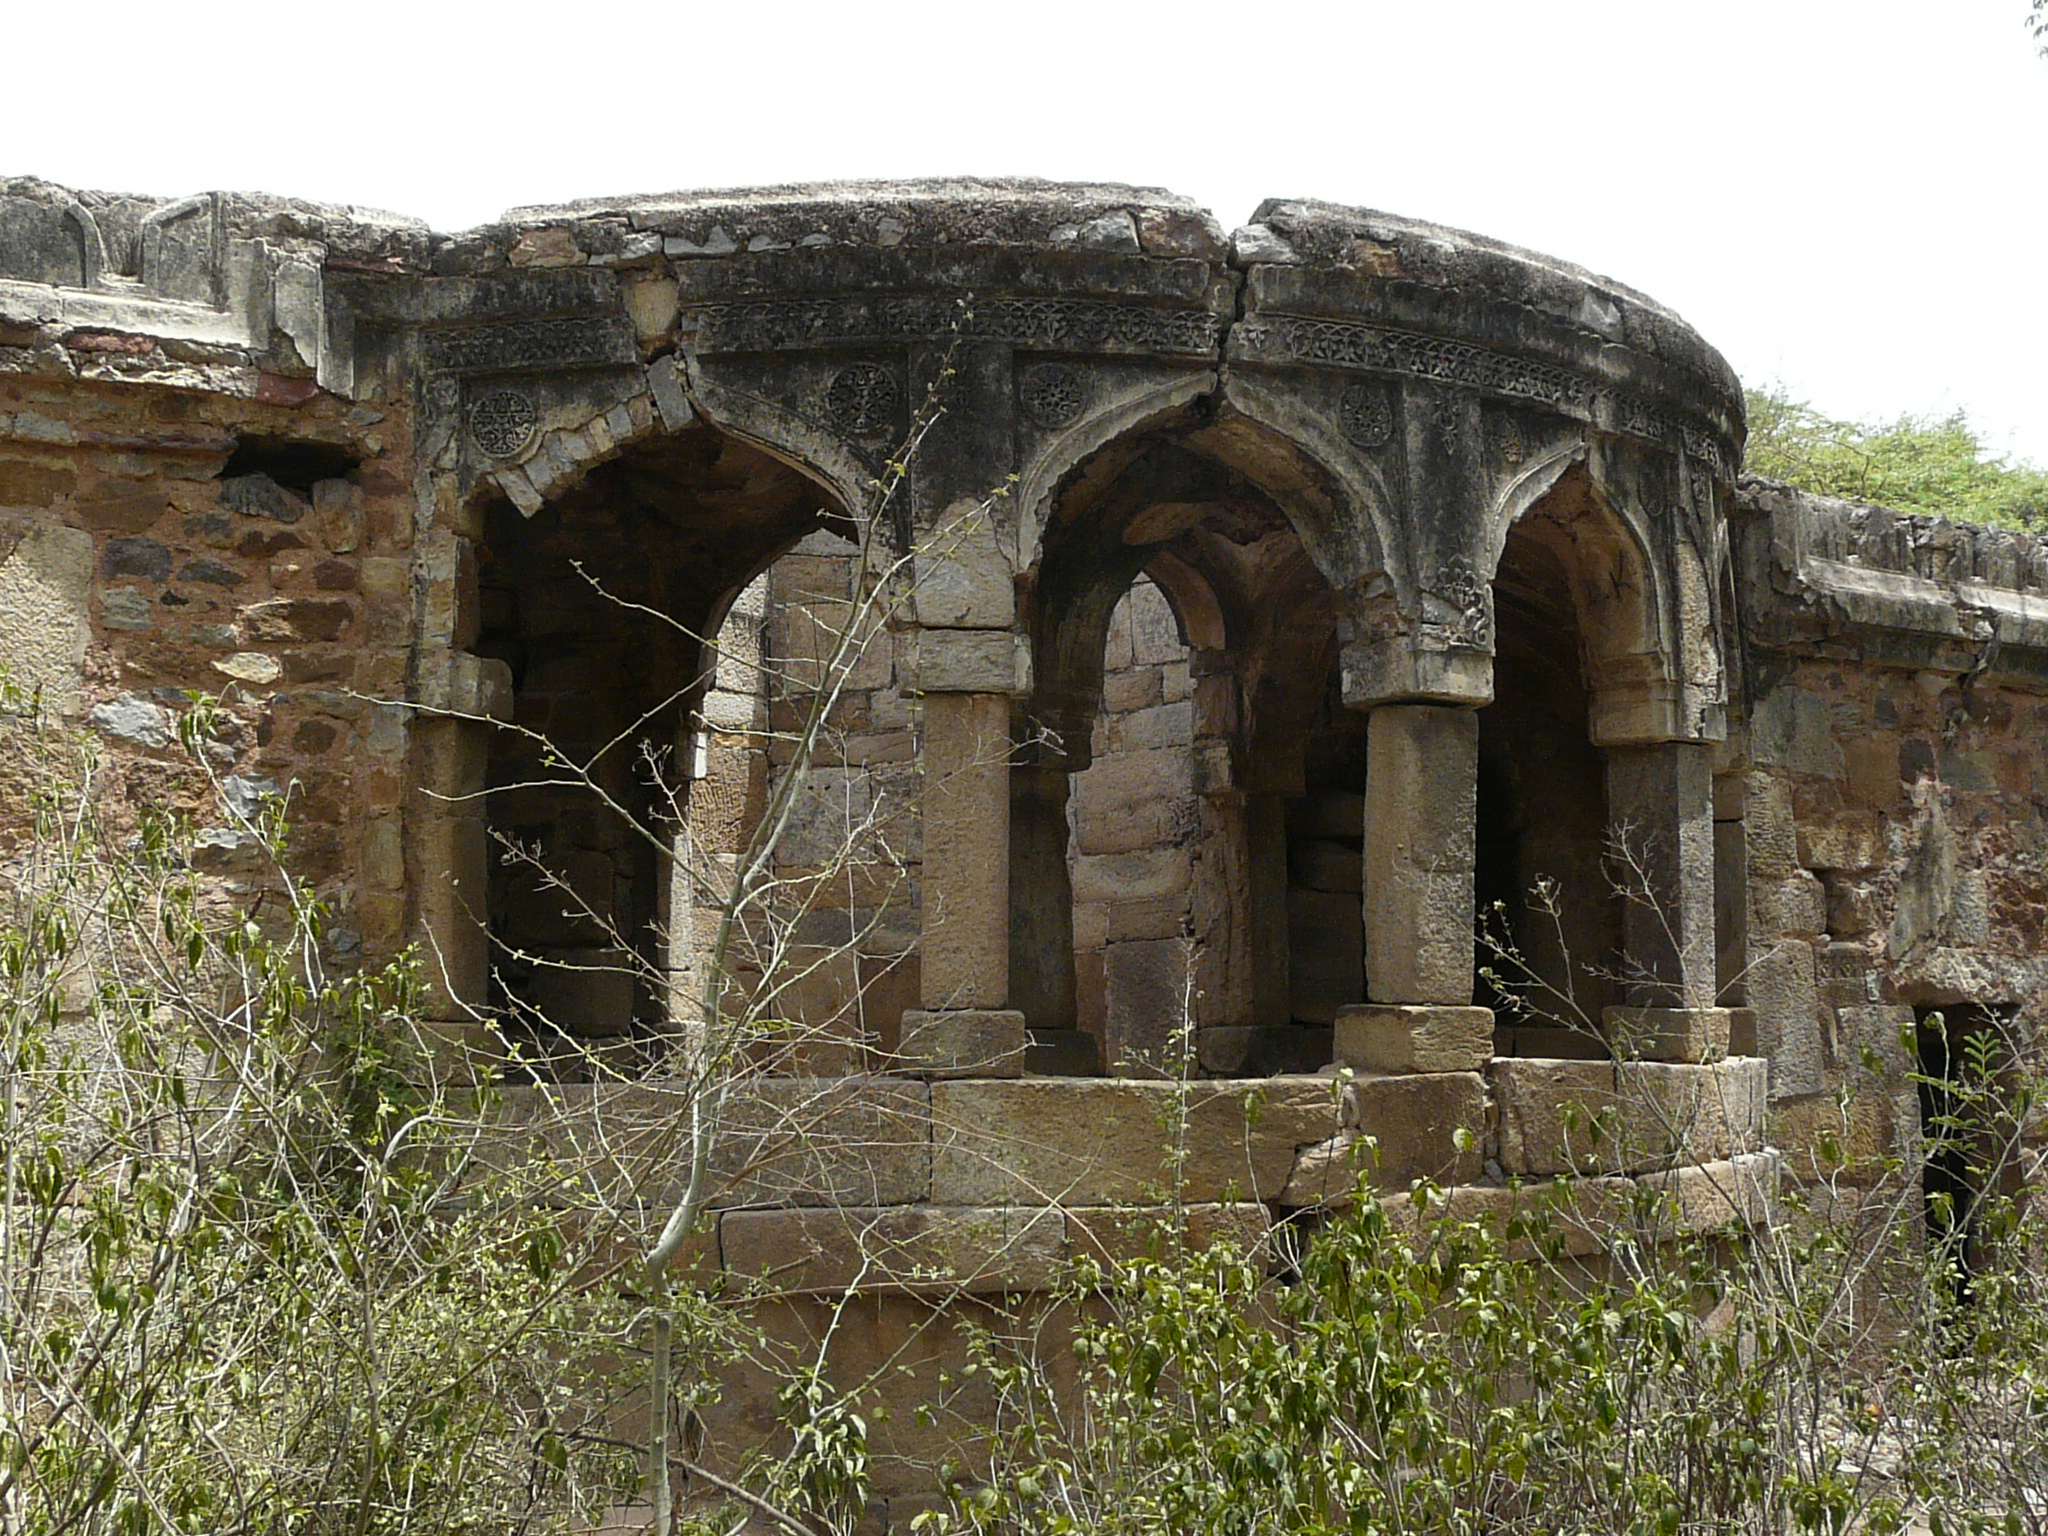 Rajon ki Baoli arcade around well